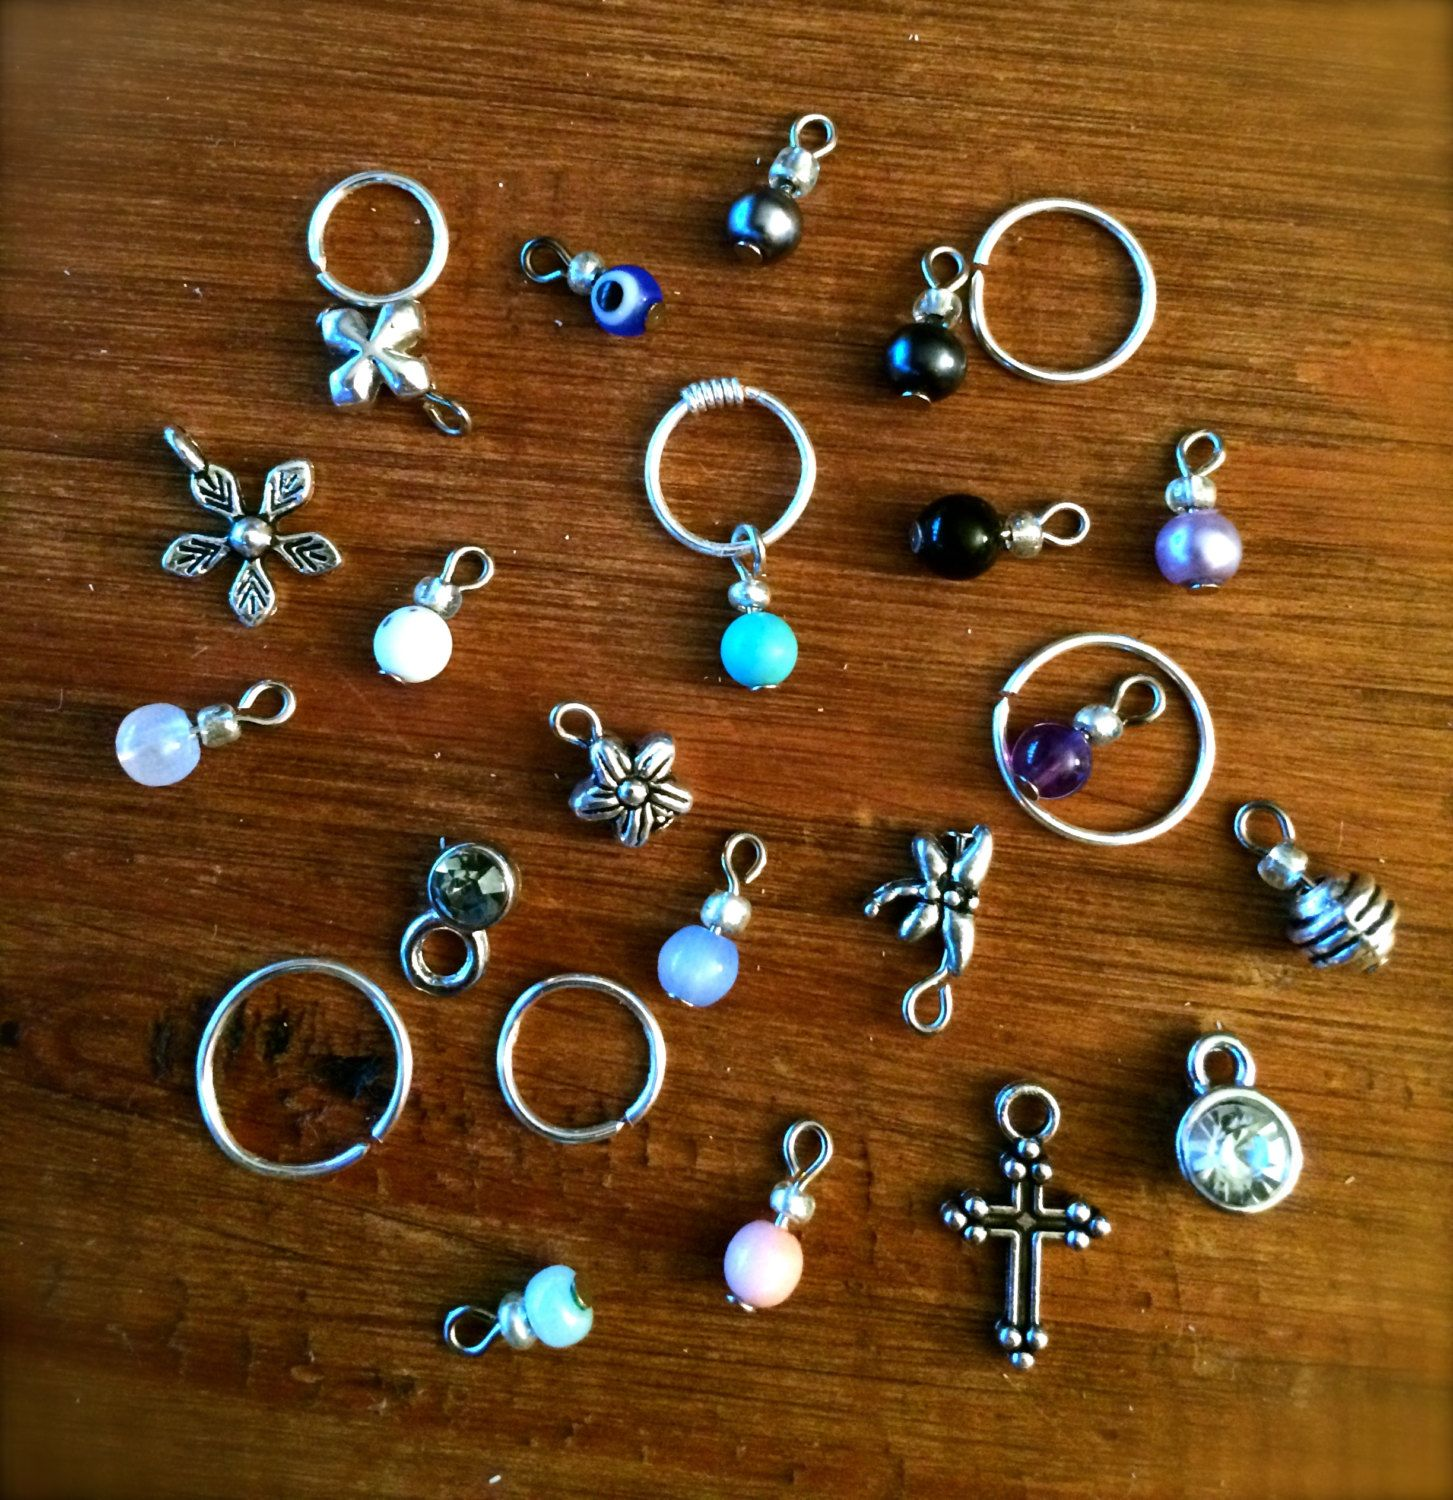 Cartilage Earring Septum Ring Choose A Charm Earring Hoop Endless Hoop  Earring Tiny Hoop Tragus Earring